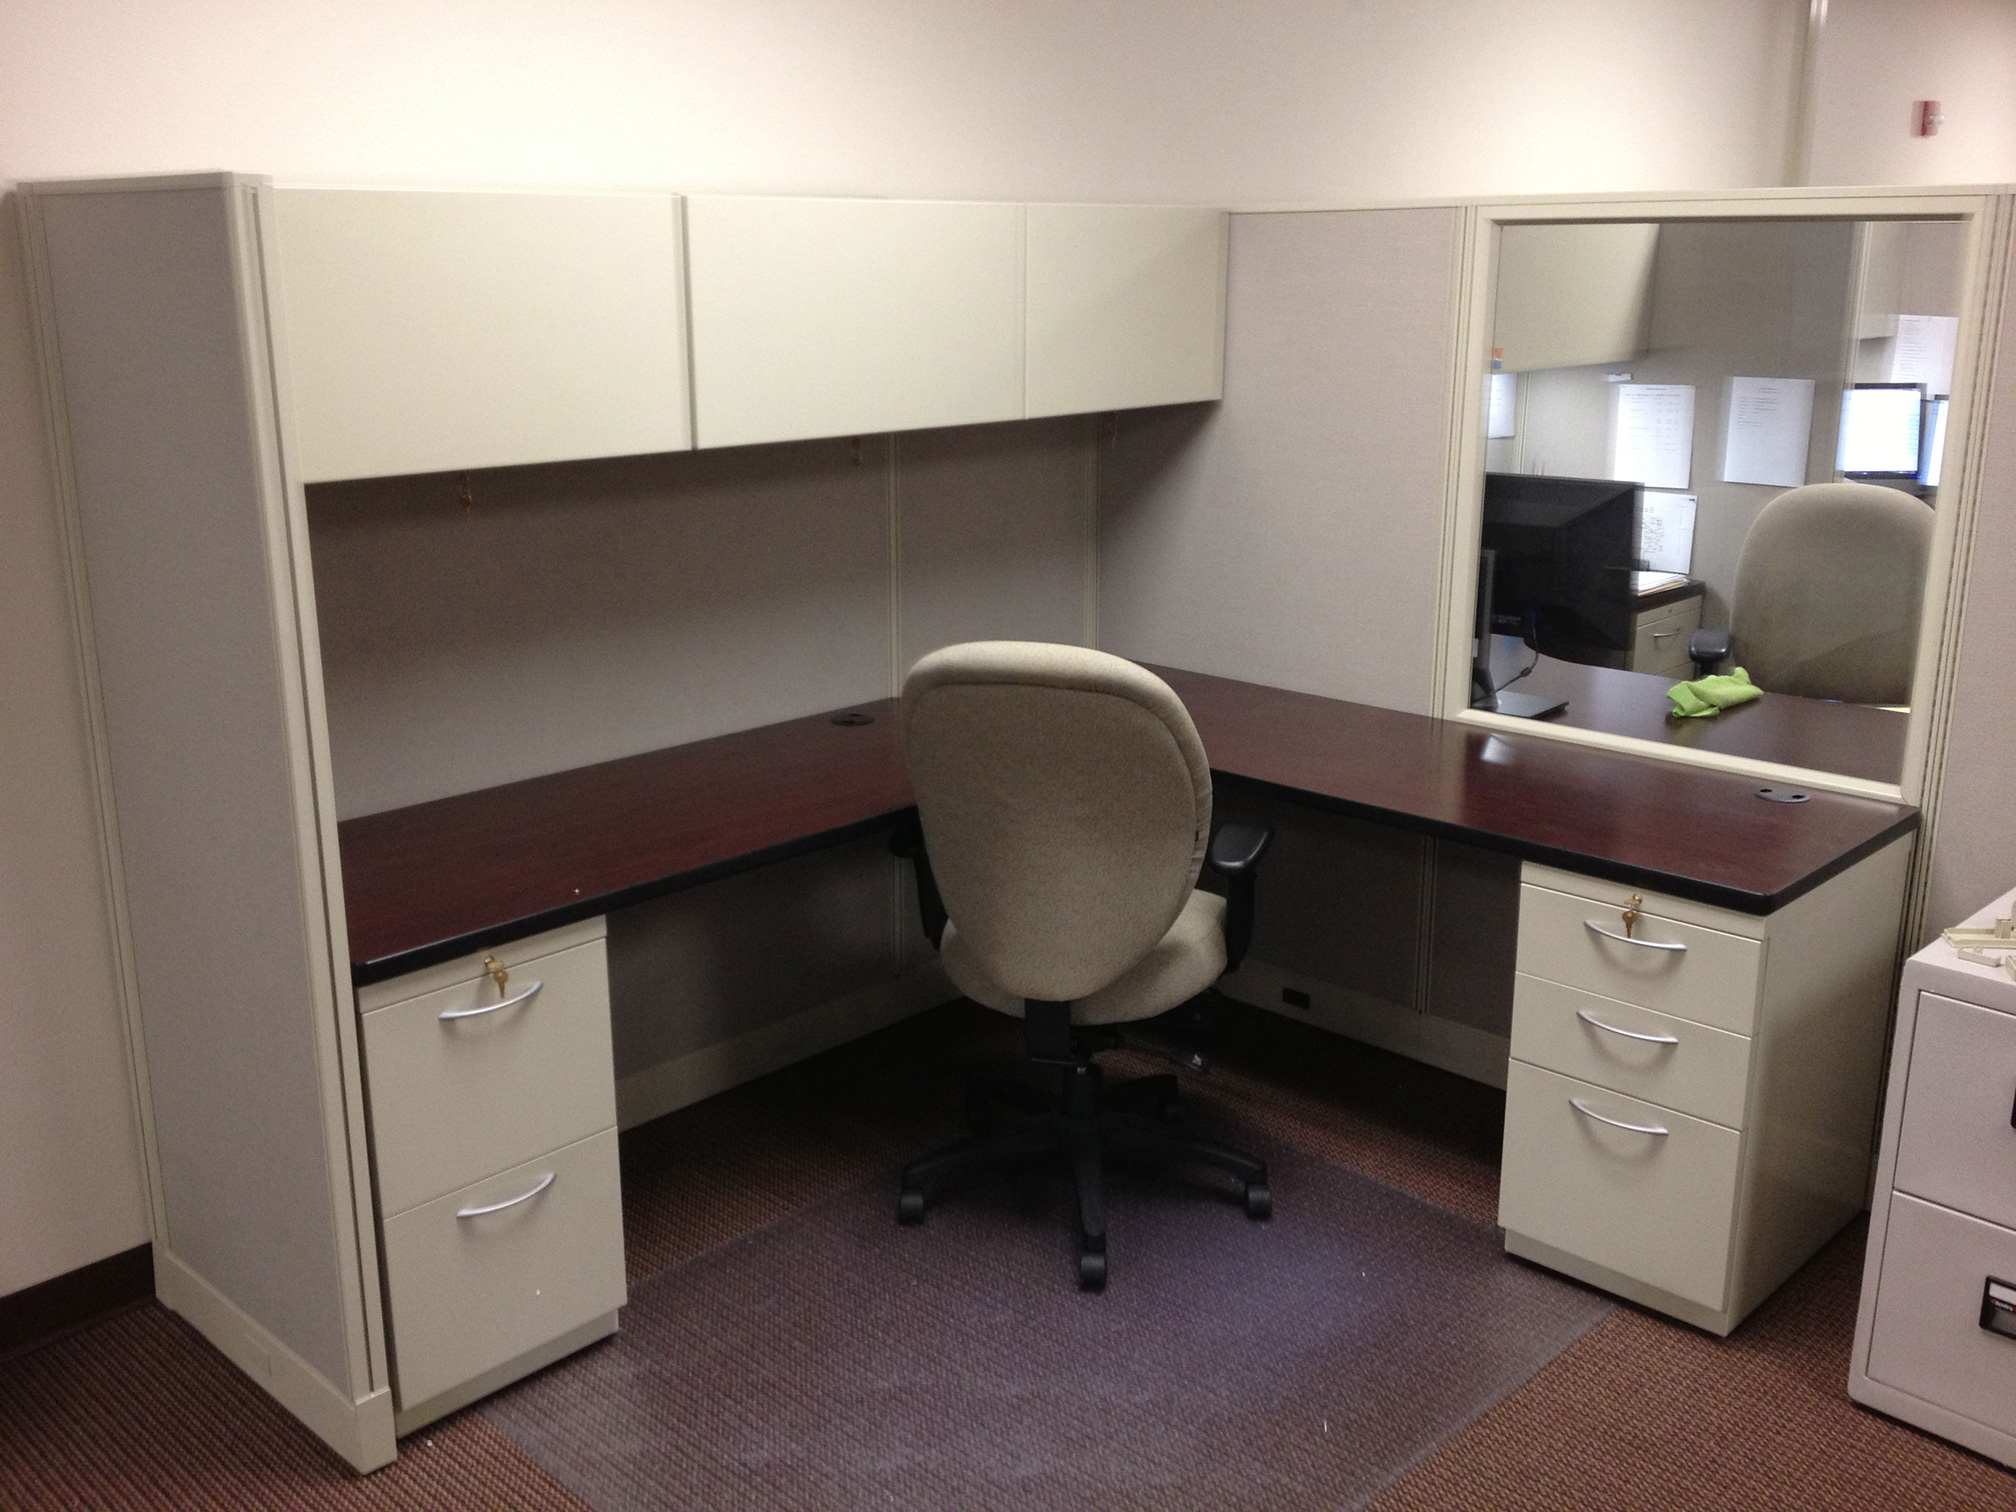 office-cubicles-for-sale-in-winter-manors-florida-3.jpg